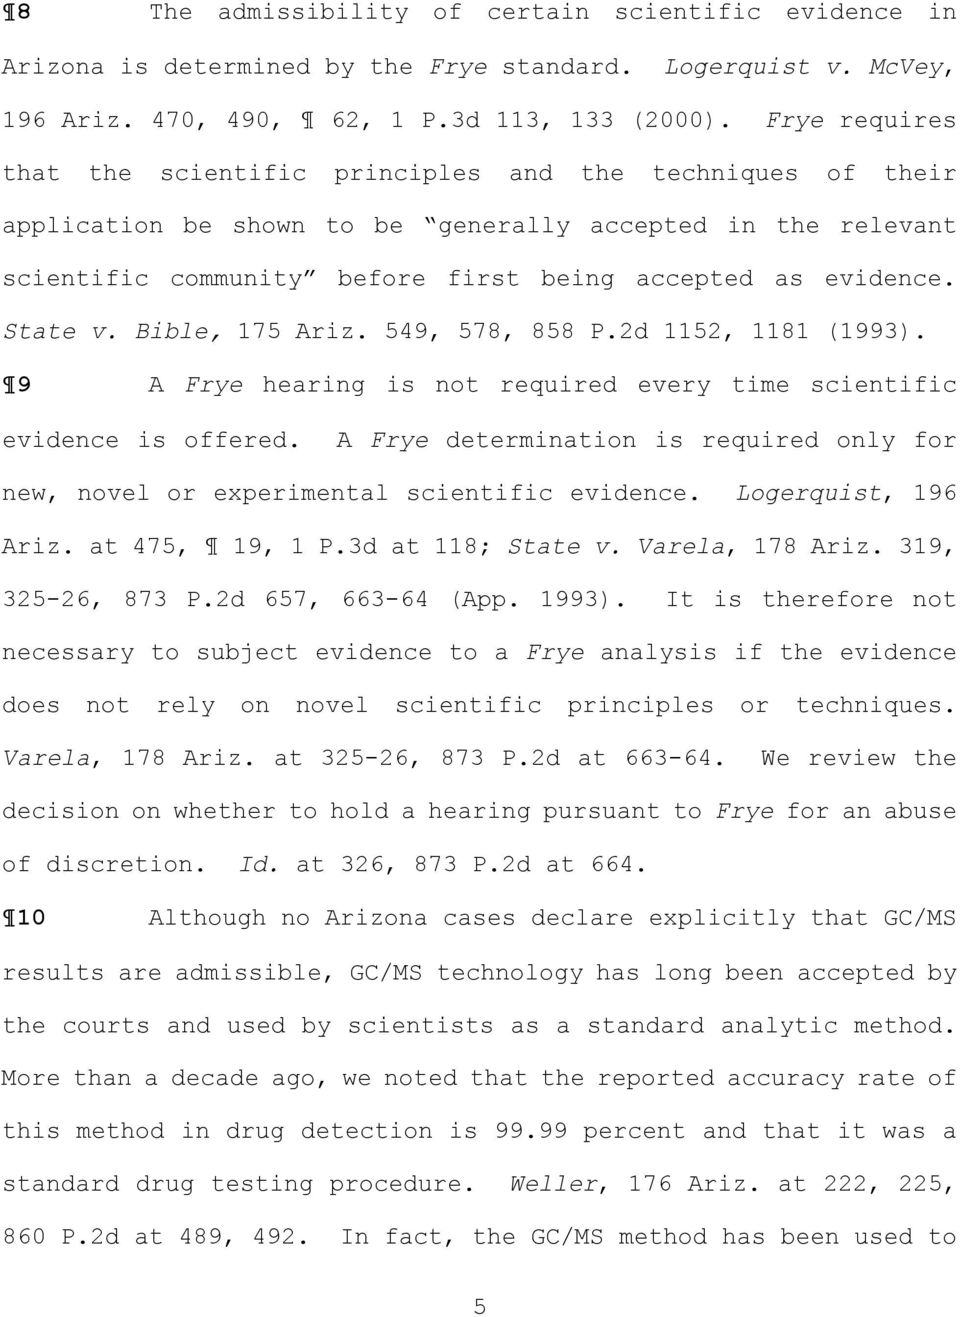 State v. Bible, 175 Ariz. 549, 578, 858 P.2d 1152, 1181 (1993. 9 A Frye hearing is not required every time scientific evidence is offered.